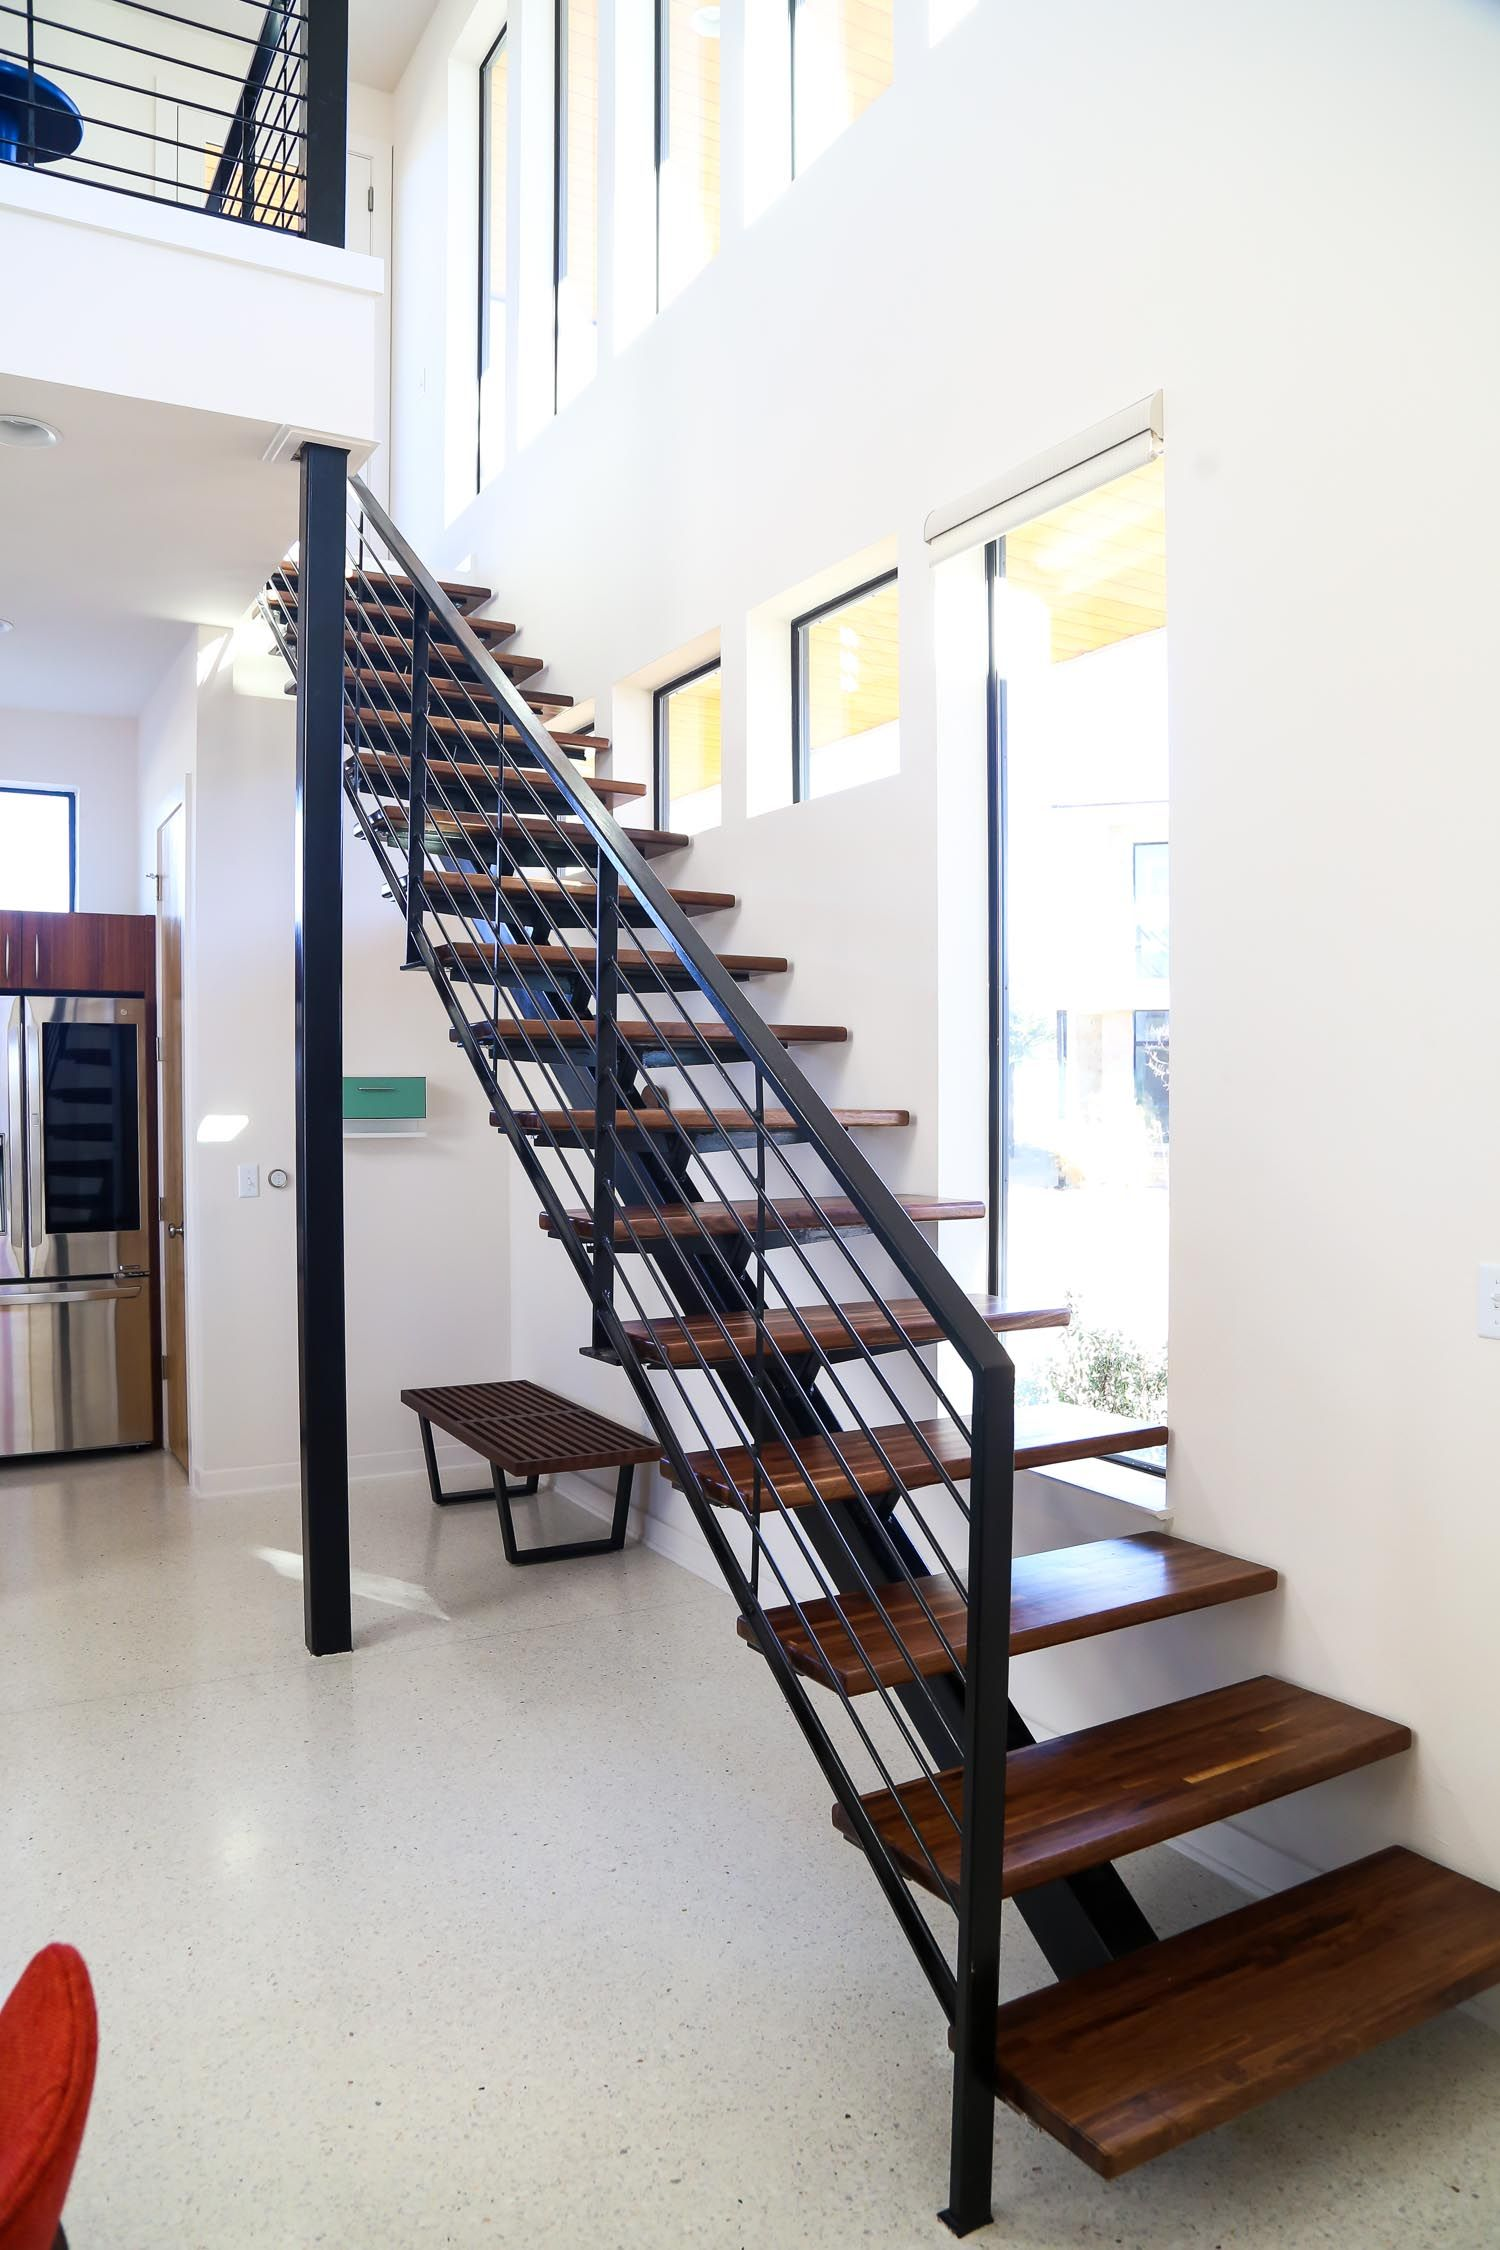 Gorgeous Open Staircase With Midcentury Modern Design Modern Staircase Mid Century Modern House Staircase Design